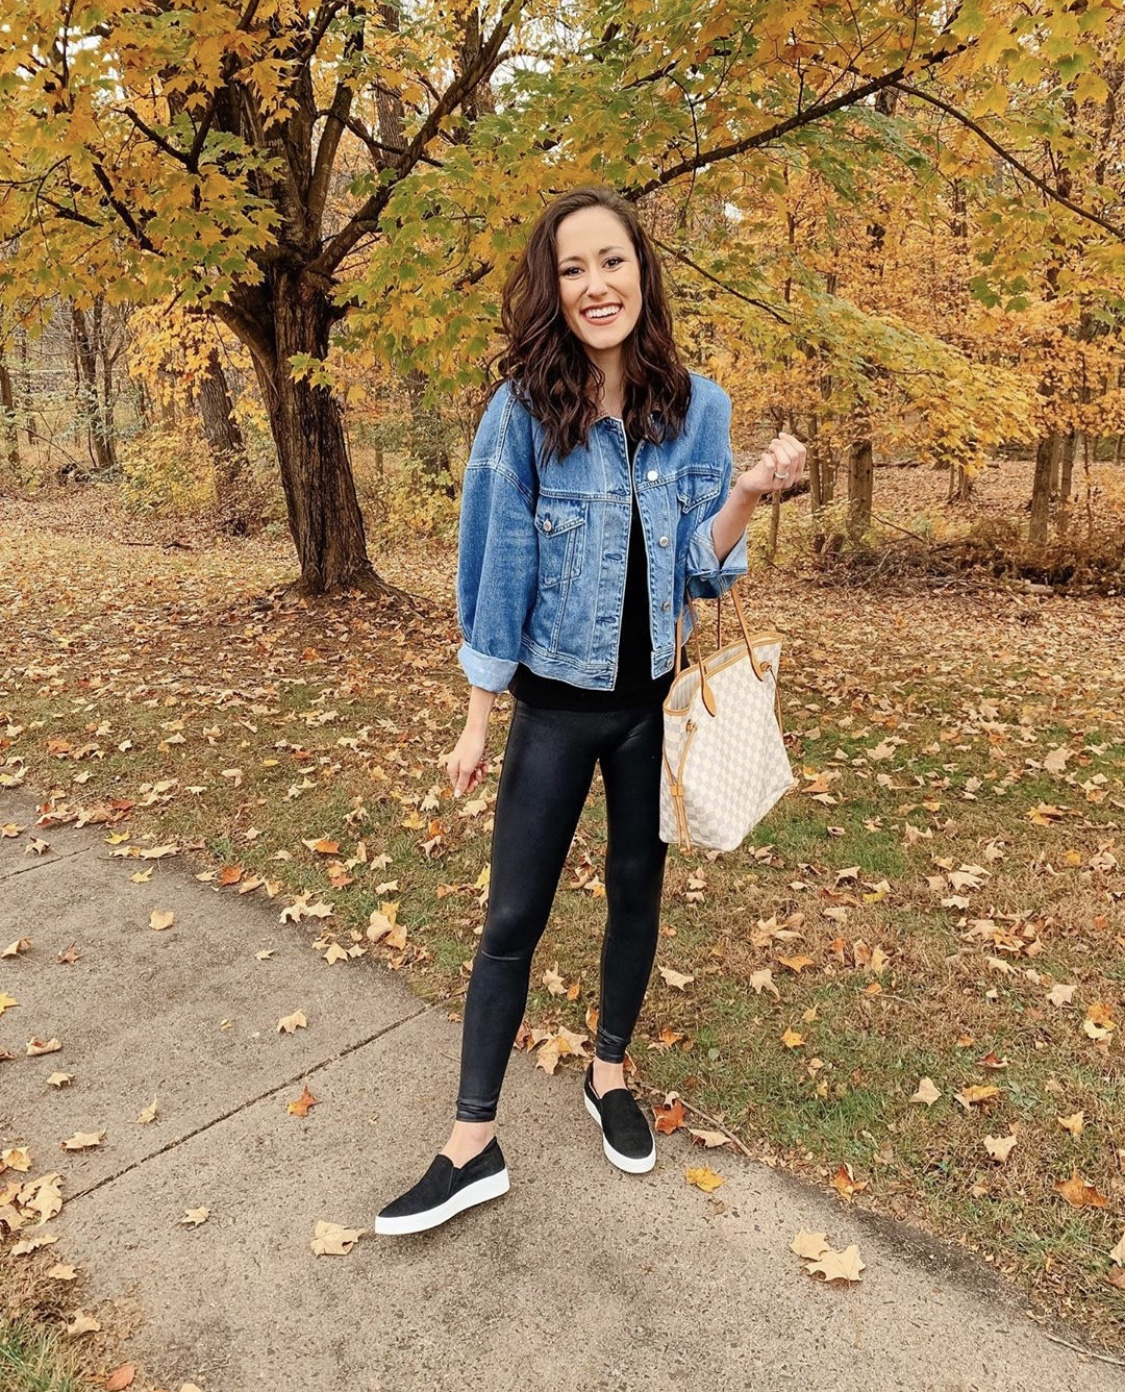 SPANX LEATHER LEGGINGS OUTFIT ON SALE - Instagram Roundup + CYBER MONDAY SALES on Coming Up Roses